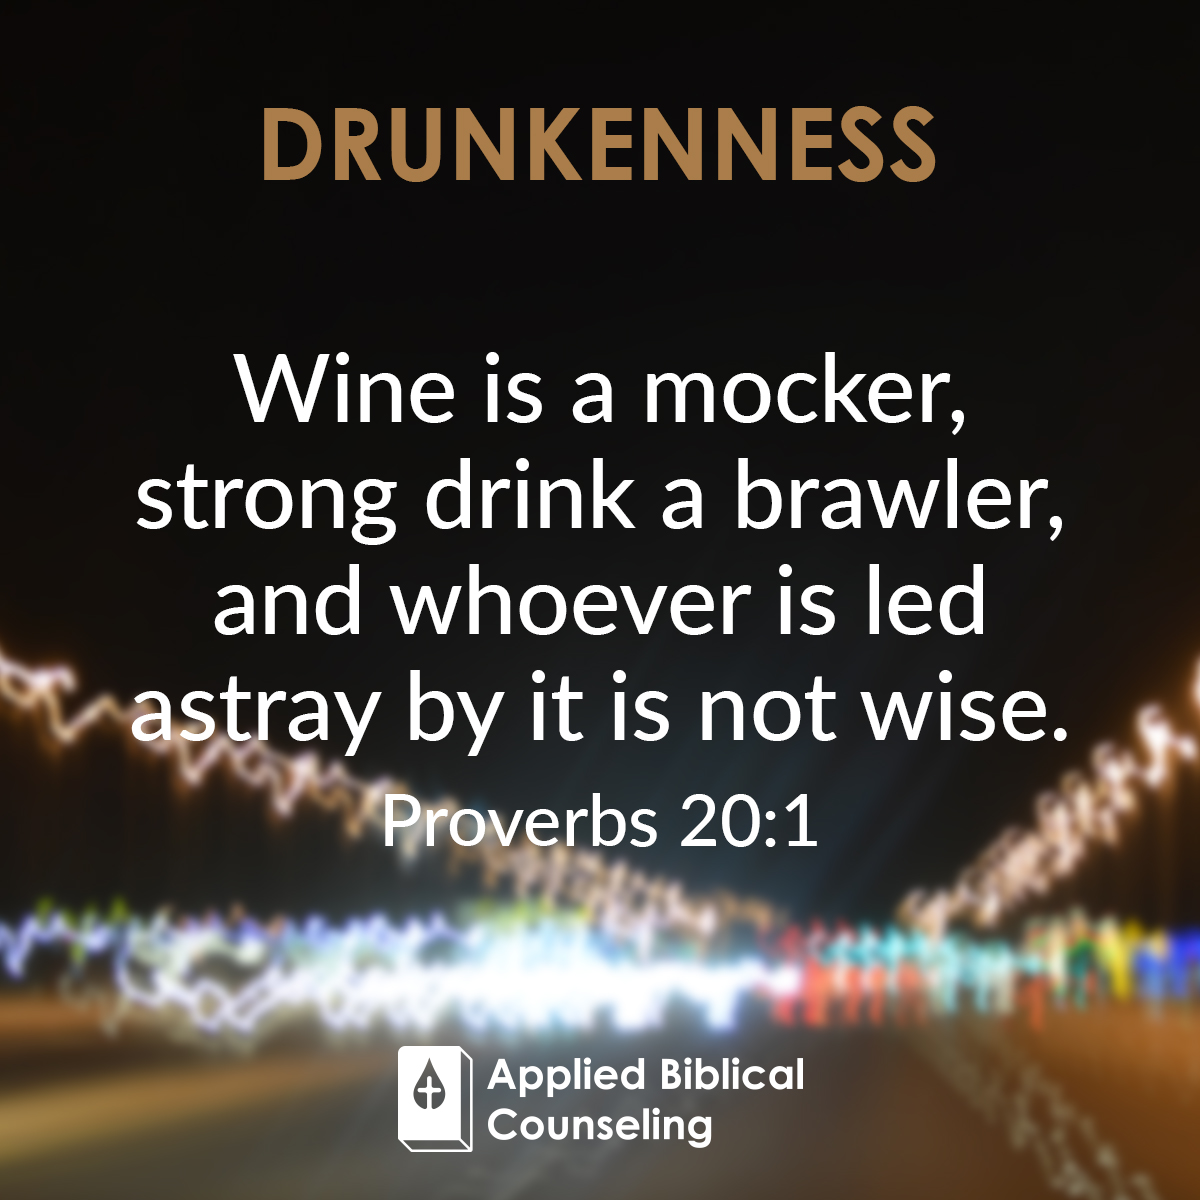 Applied Biblical Counseling Facebook w18 Drunkenness 1